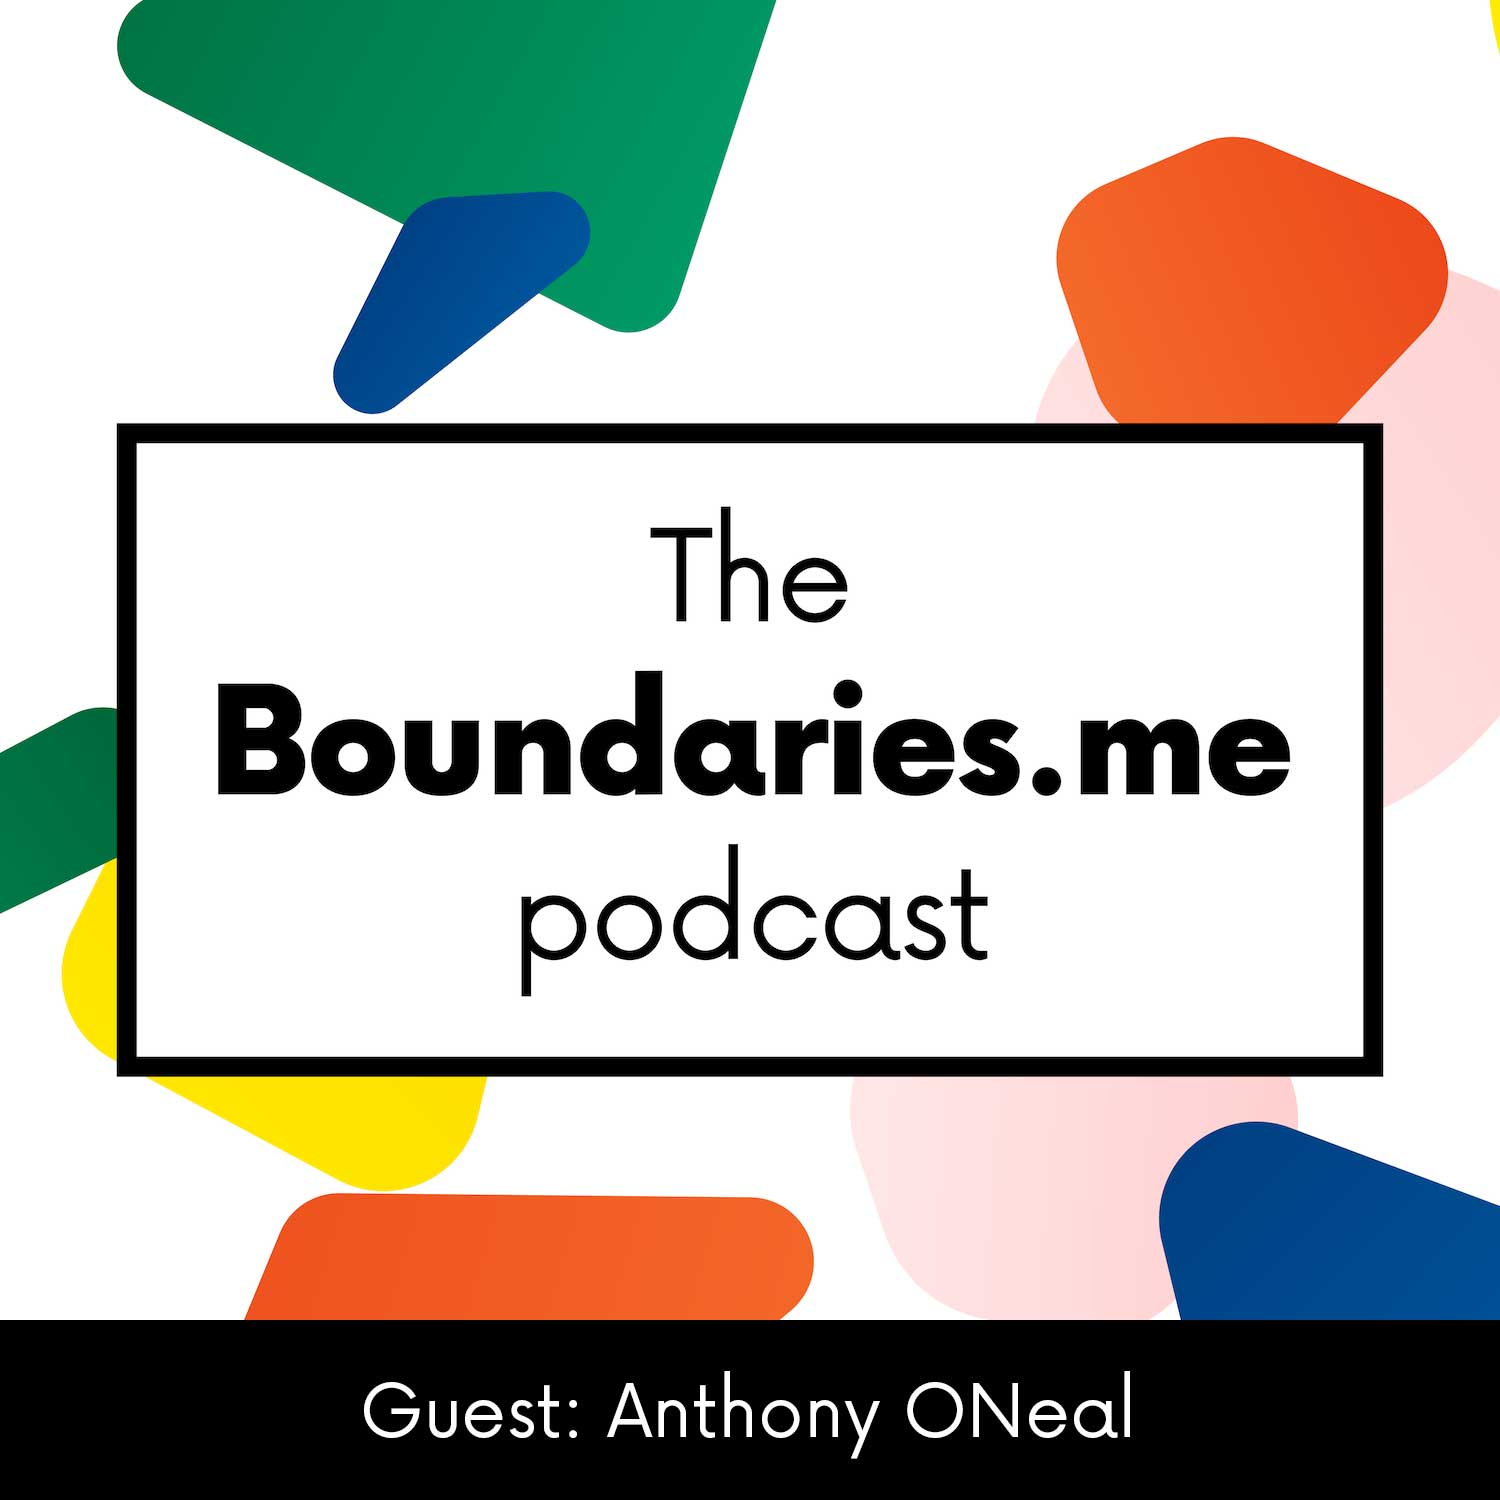 Episode 5 with Anthony ONeal - Reaching Your Vision